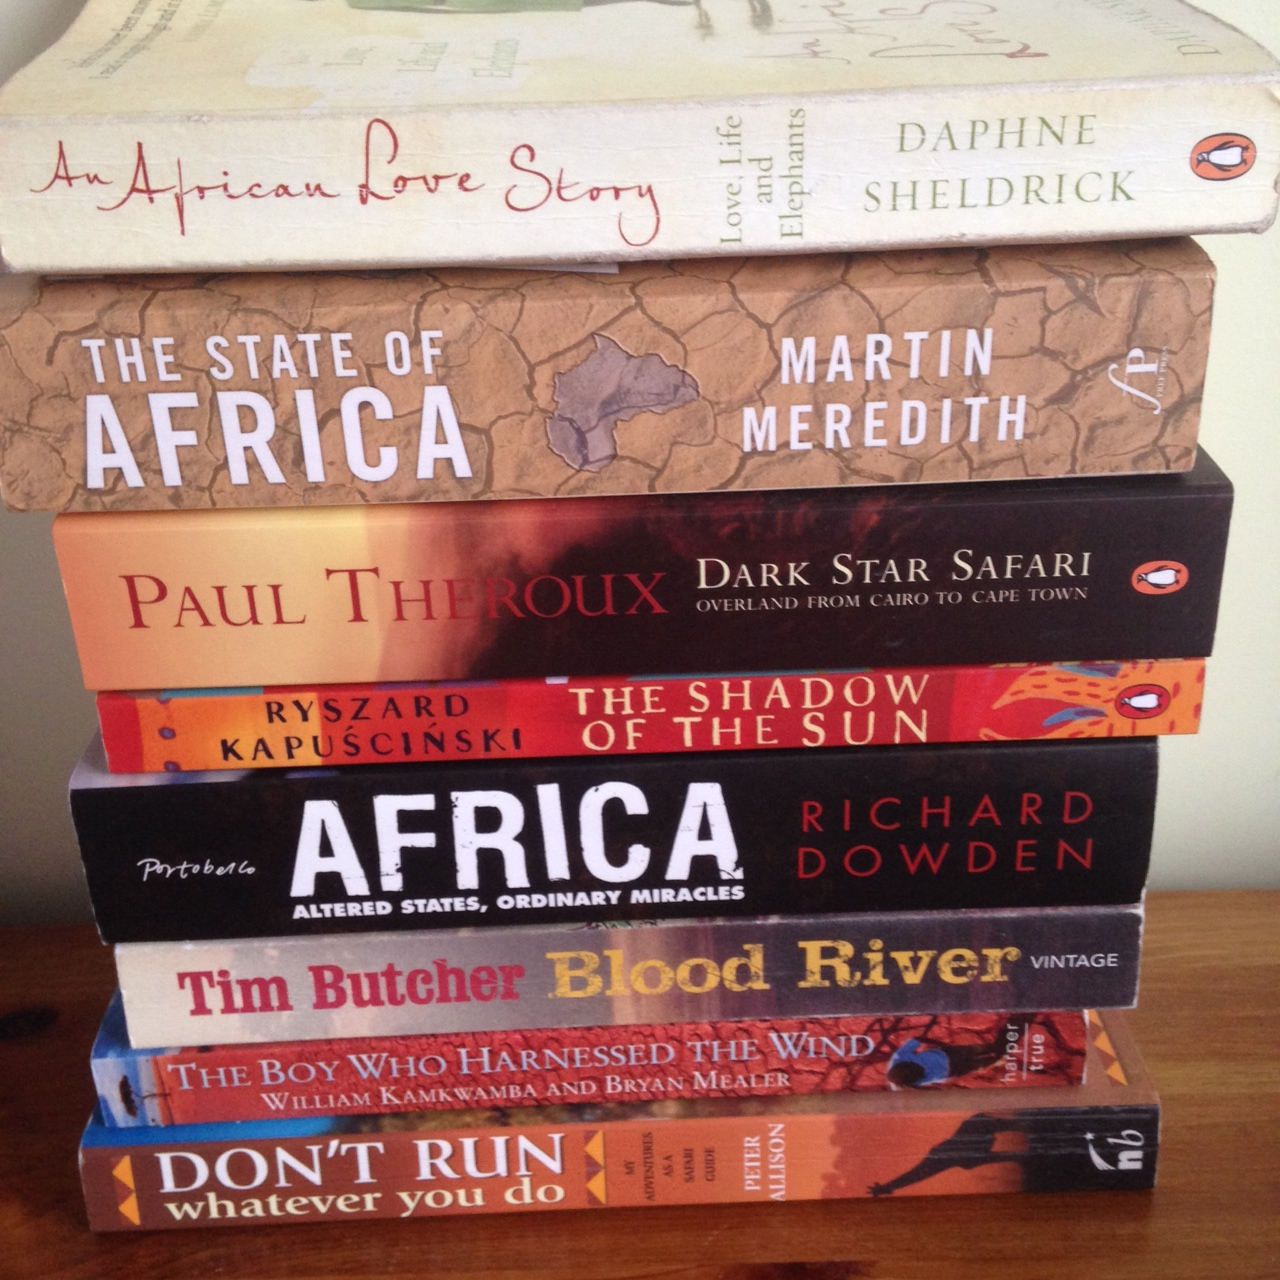 Travelling to Africa? Here's 10 Great Books You Should